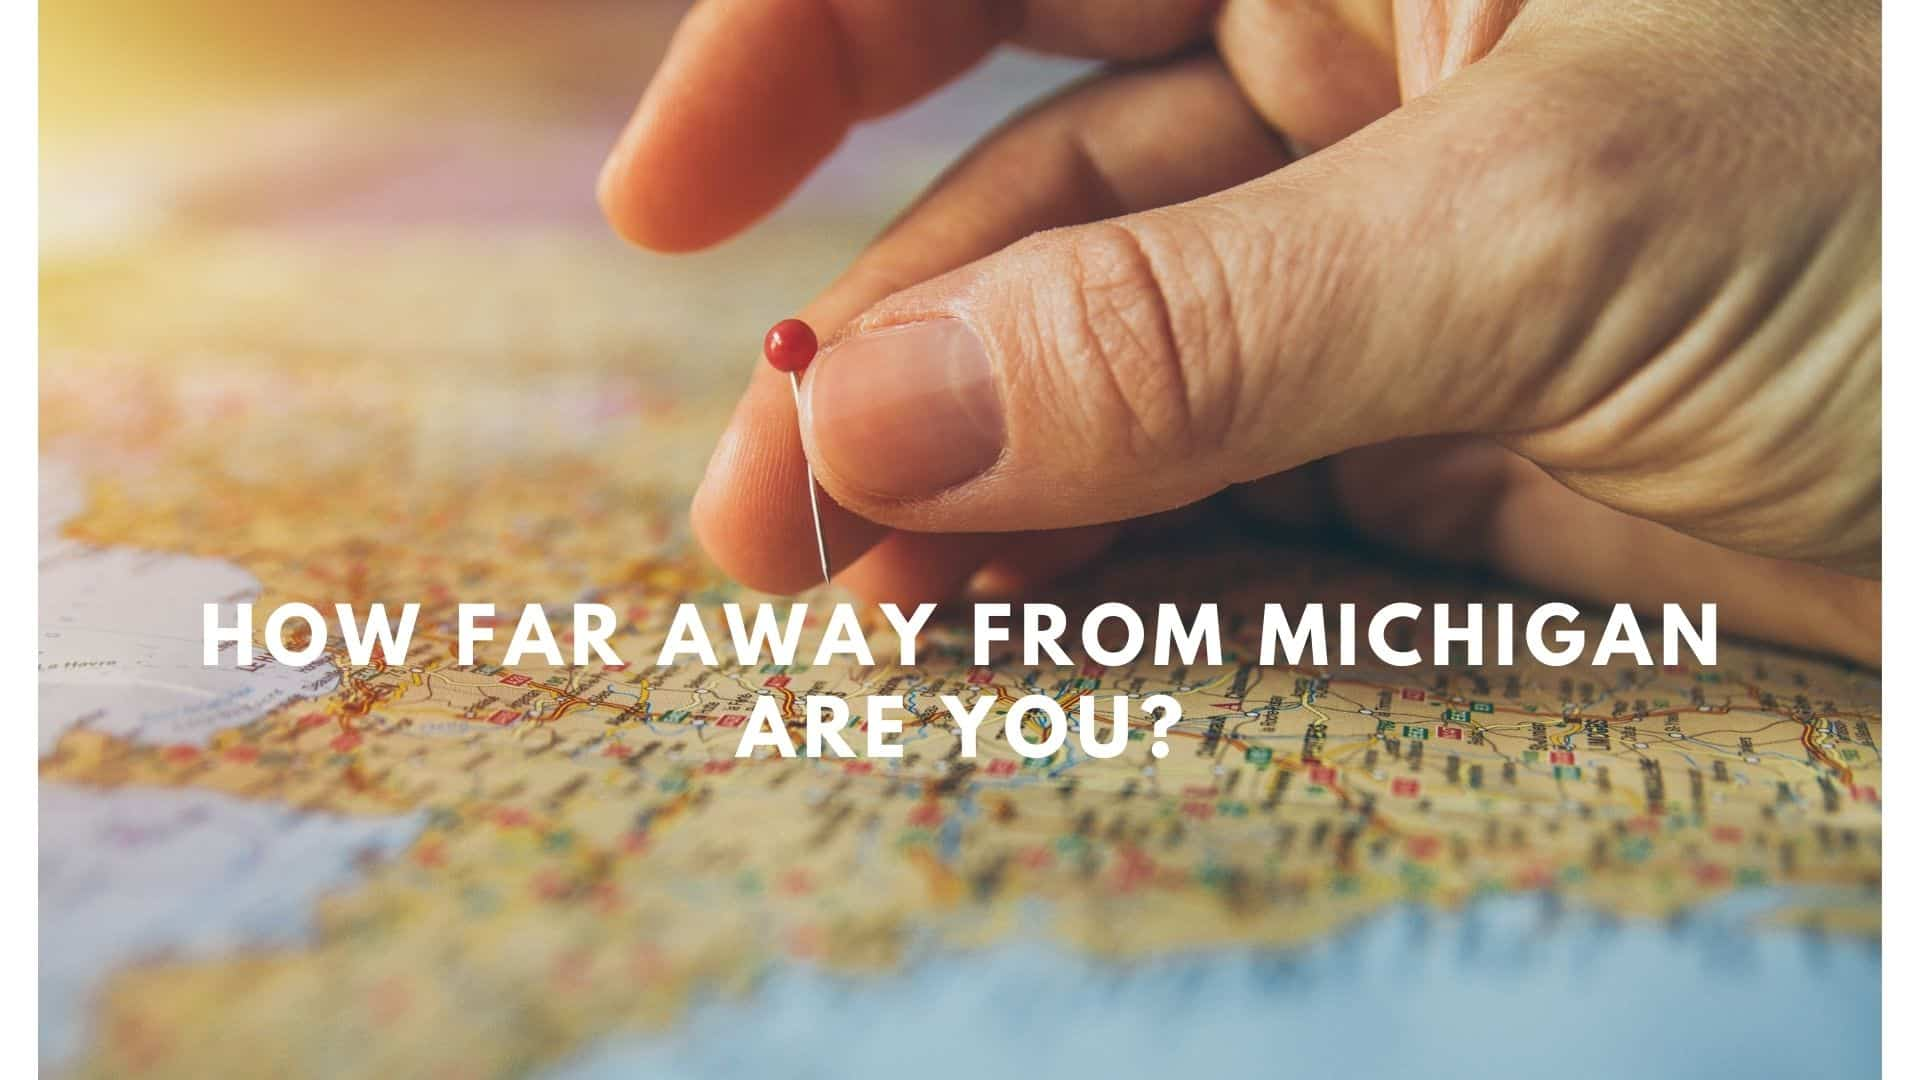 How Far Am I From Michigan?